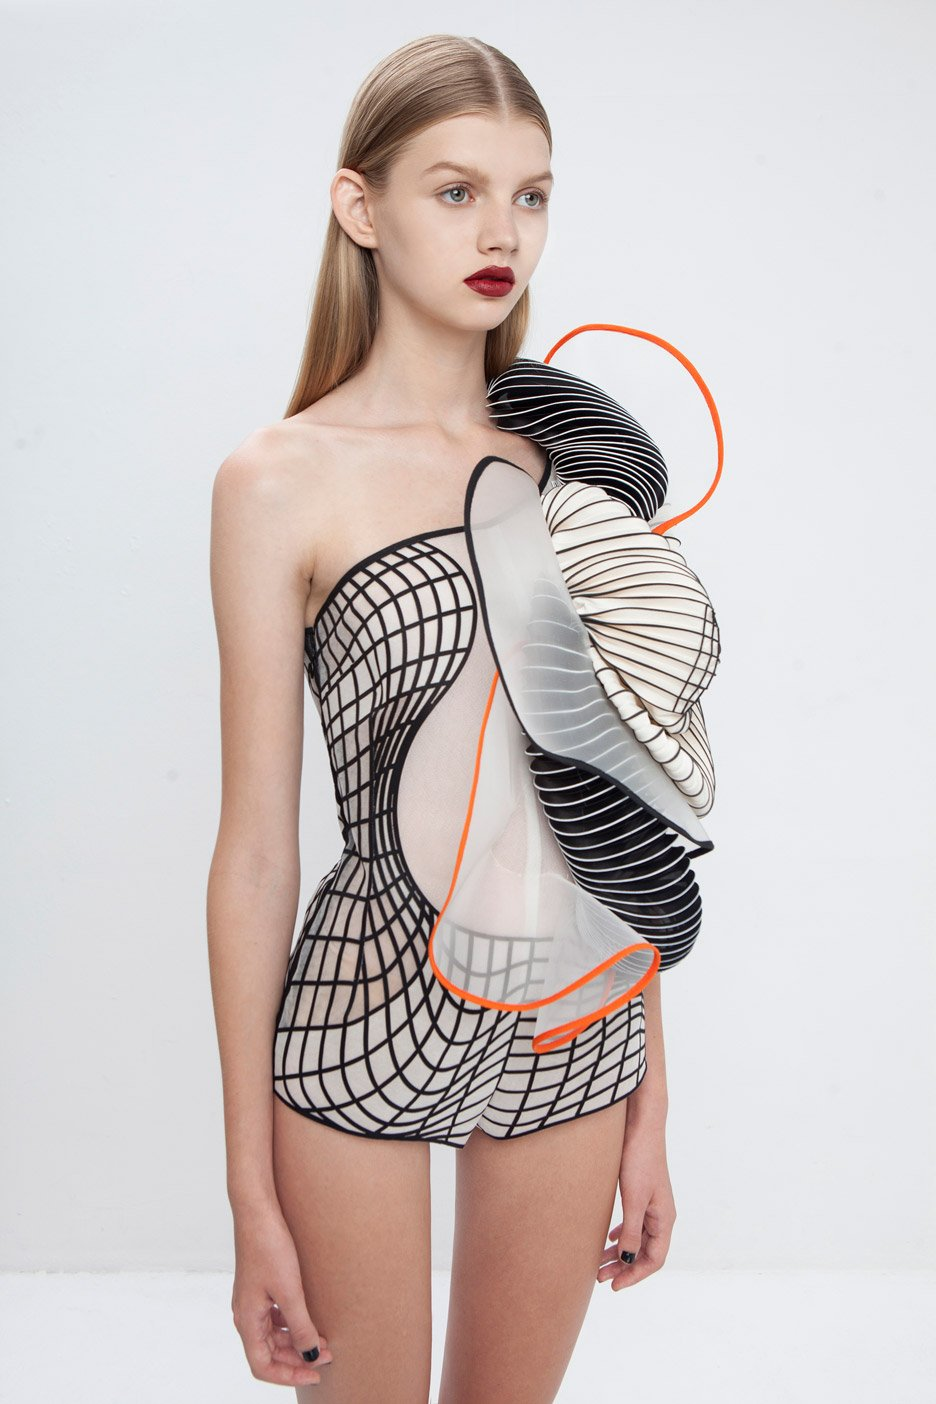 Bodysuit from the Hard Copy collection by Noa Raviv, 2014